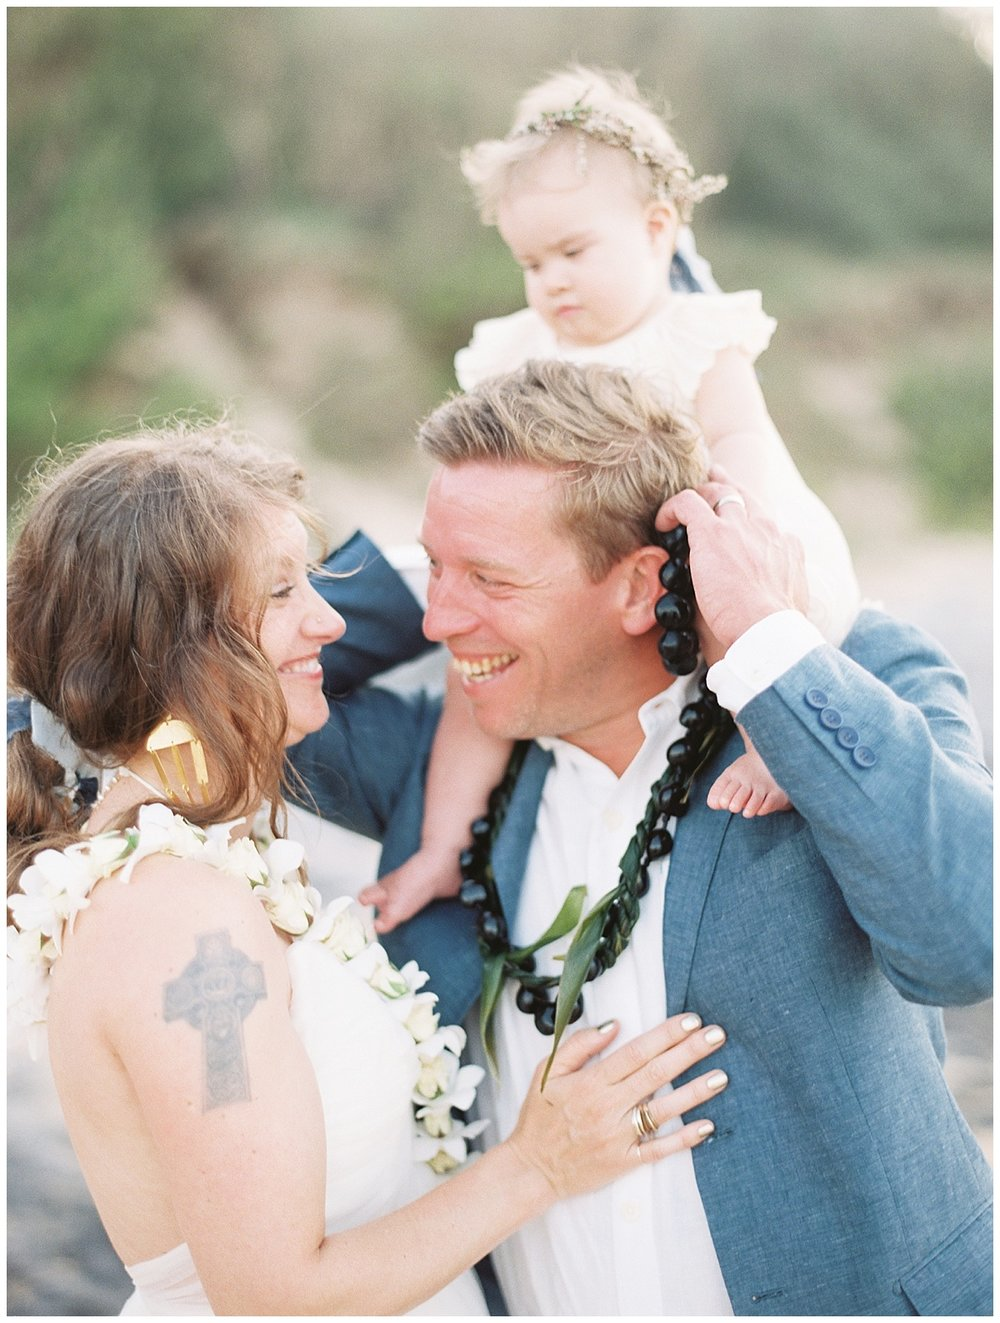 beach-elopement-bride-groom-smiling-laughing-daughter-on-shoulders-family.jpg